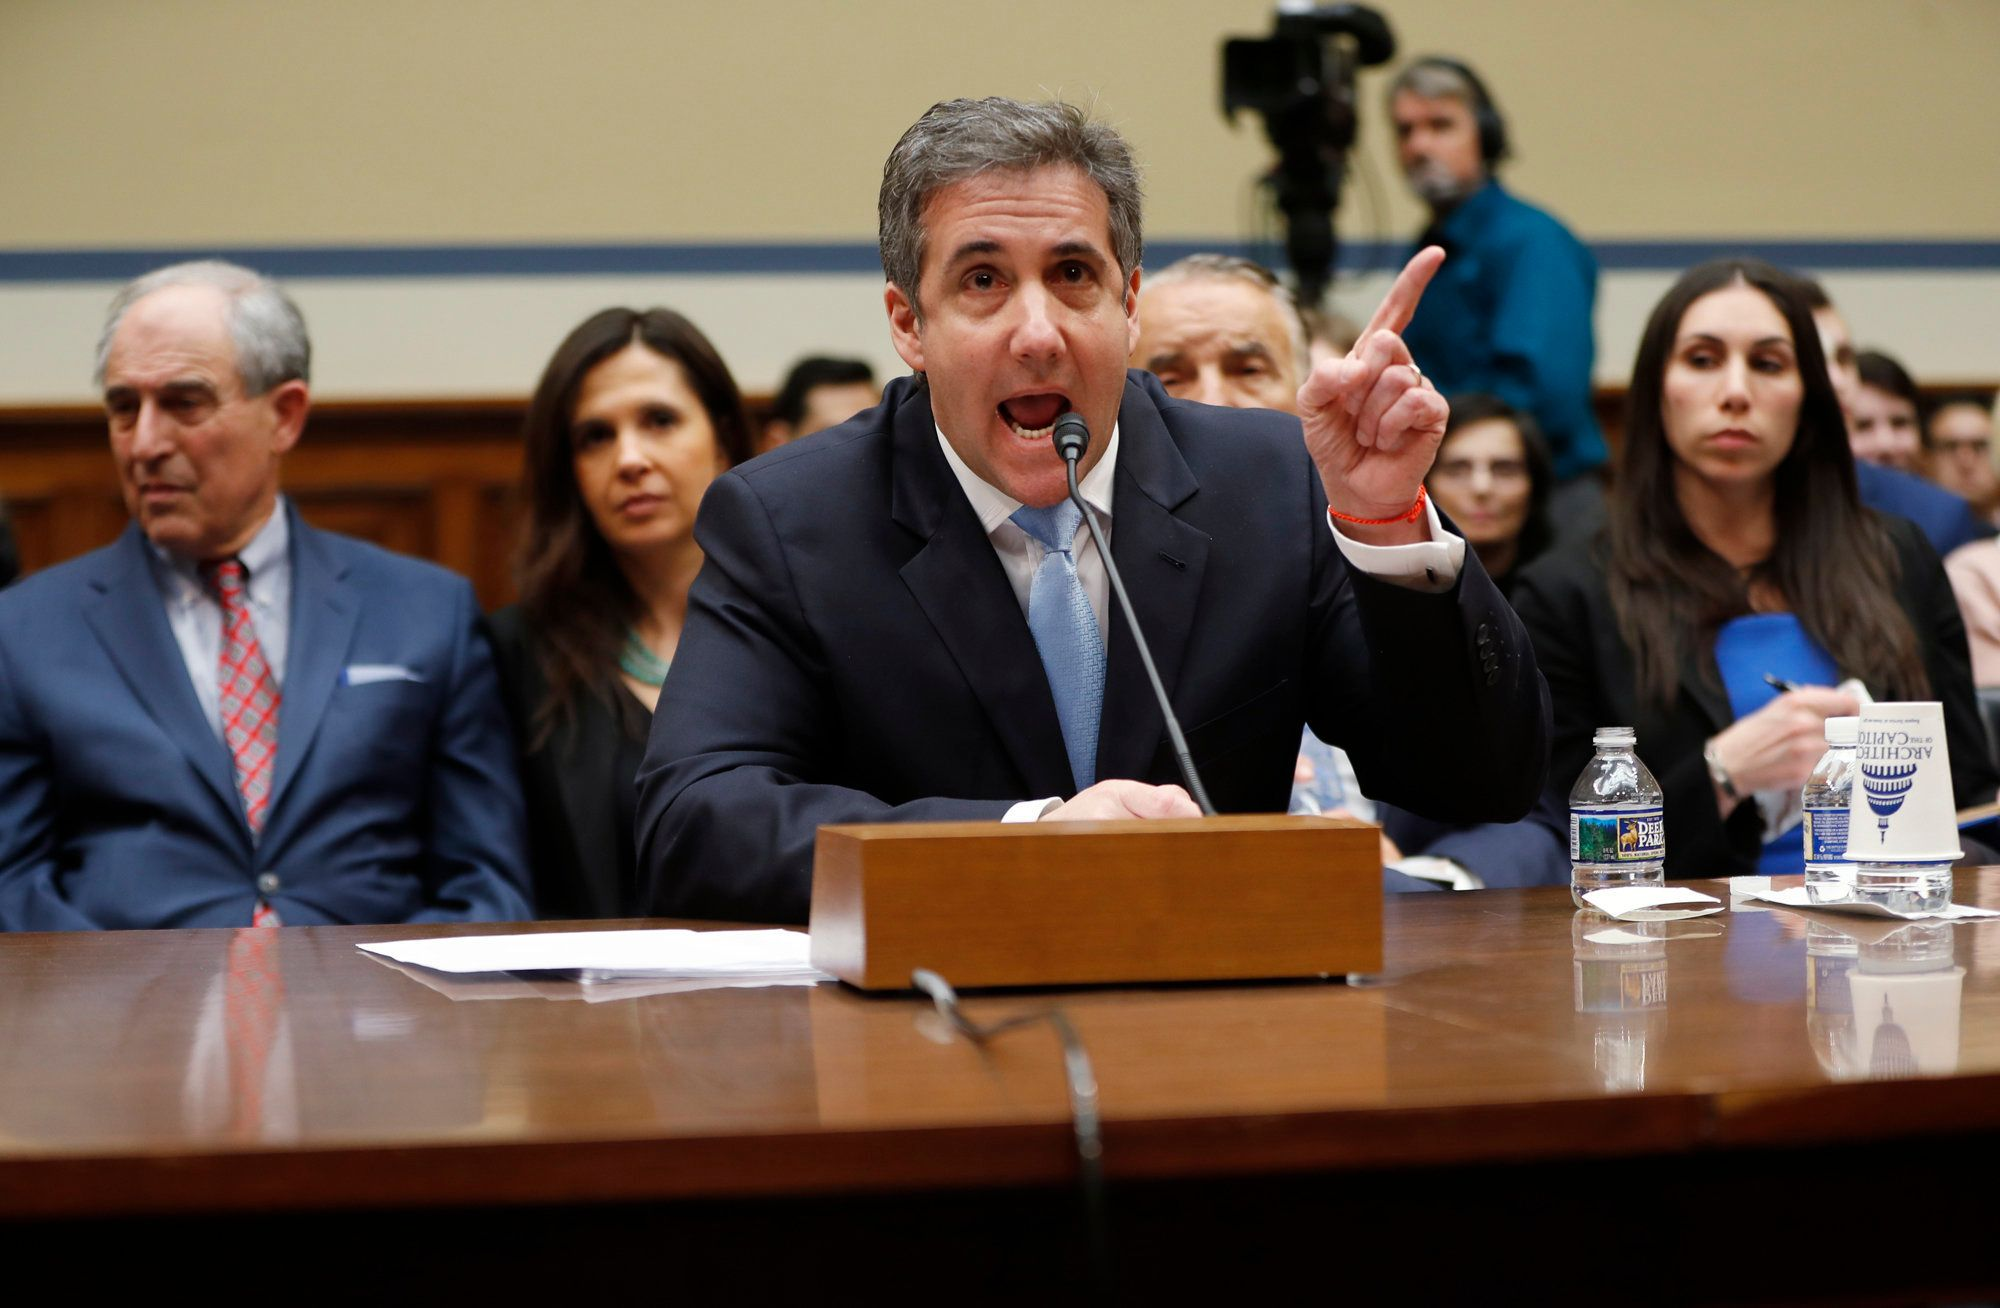 Michael Cohen, President Donald Trump's former personal lawyer, testifies before the House Oversight and Reform Committee on Capitol Hill in Washington, Wednesday, Feb. 27, 2019. (AP Photo/Pablo Martinez Monsivais)